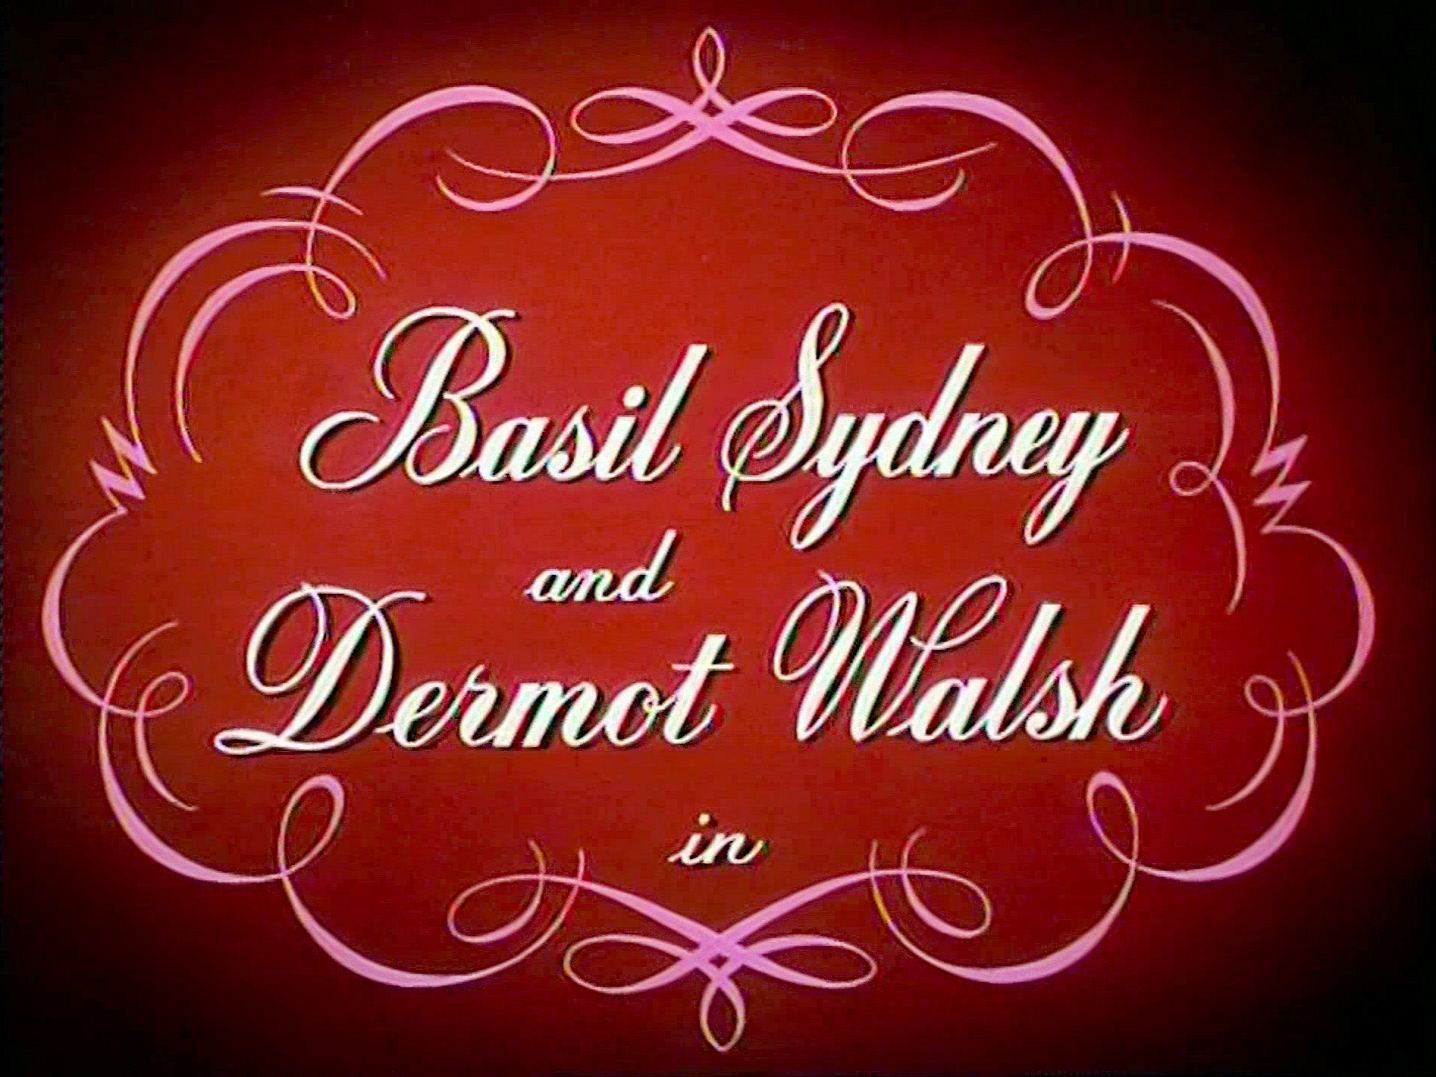 Main title from Jassy (1947) (6). Basil Sydney and Dermot Walsh